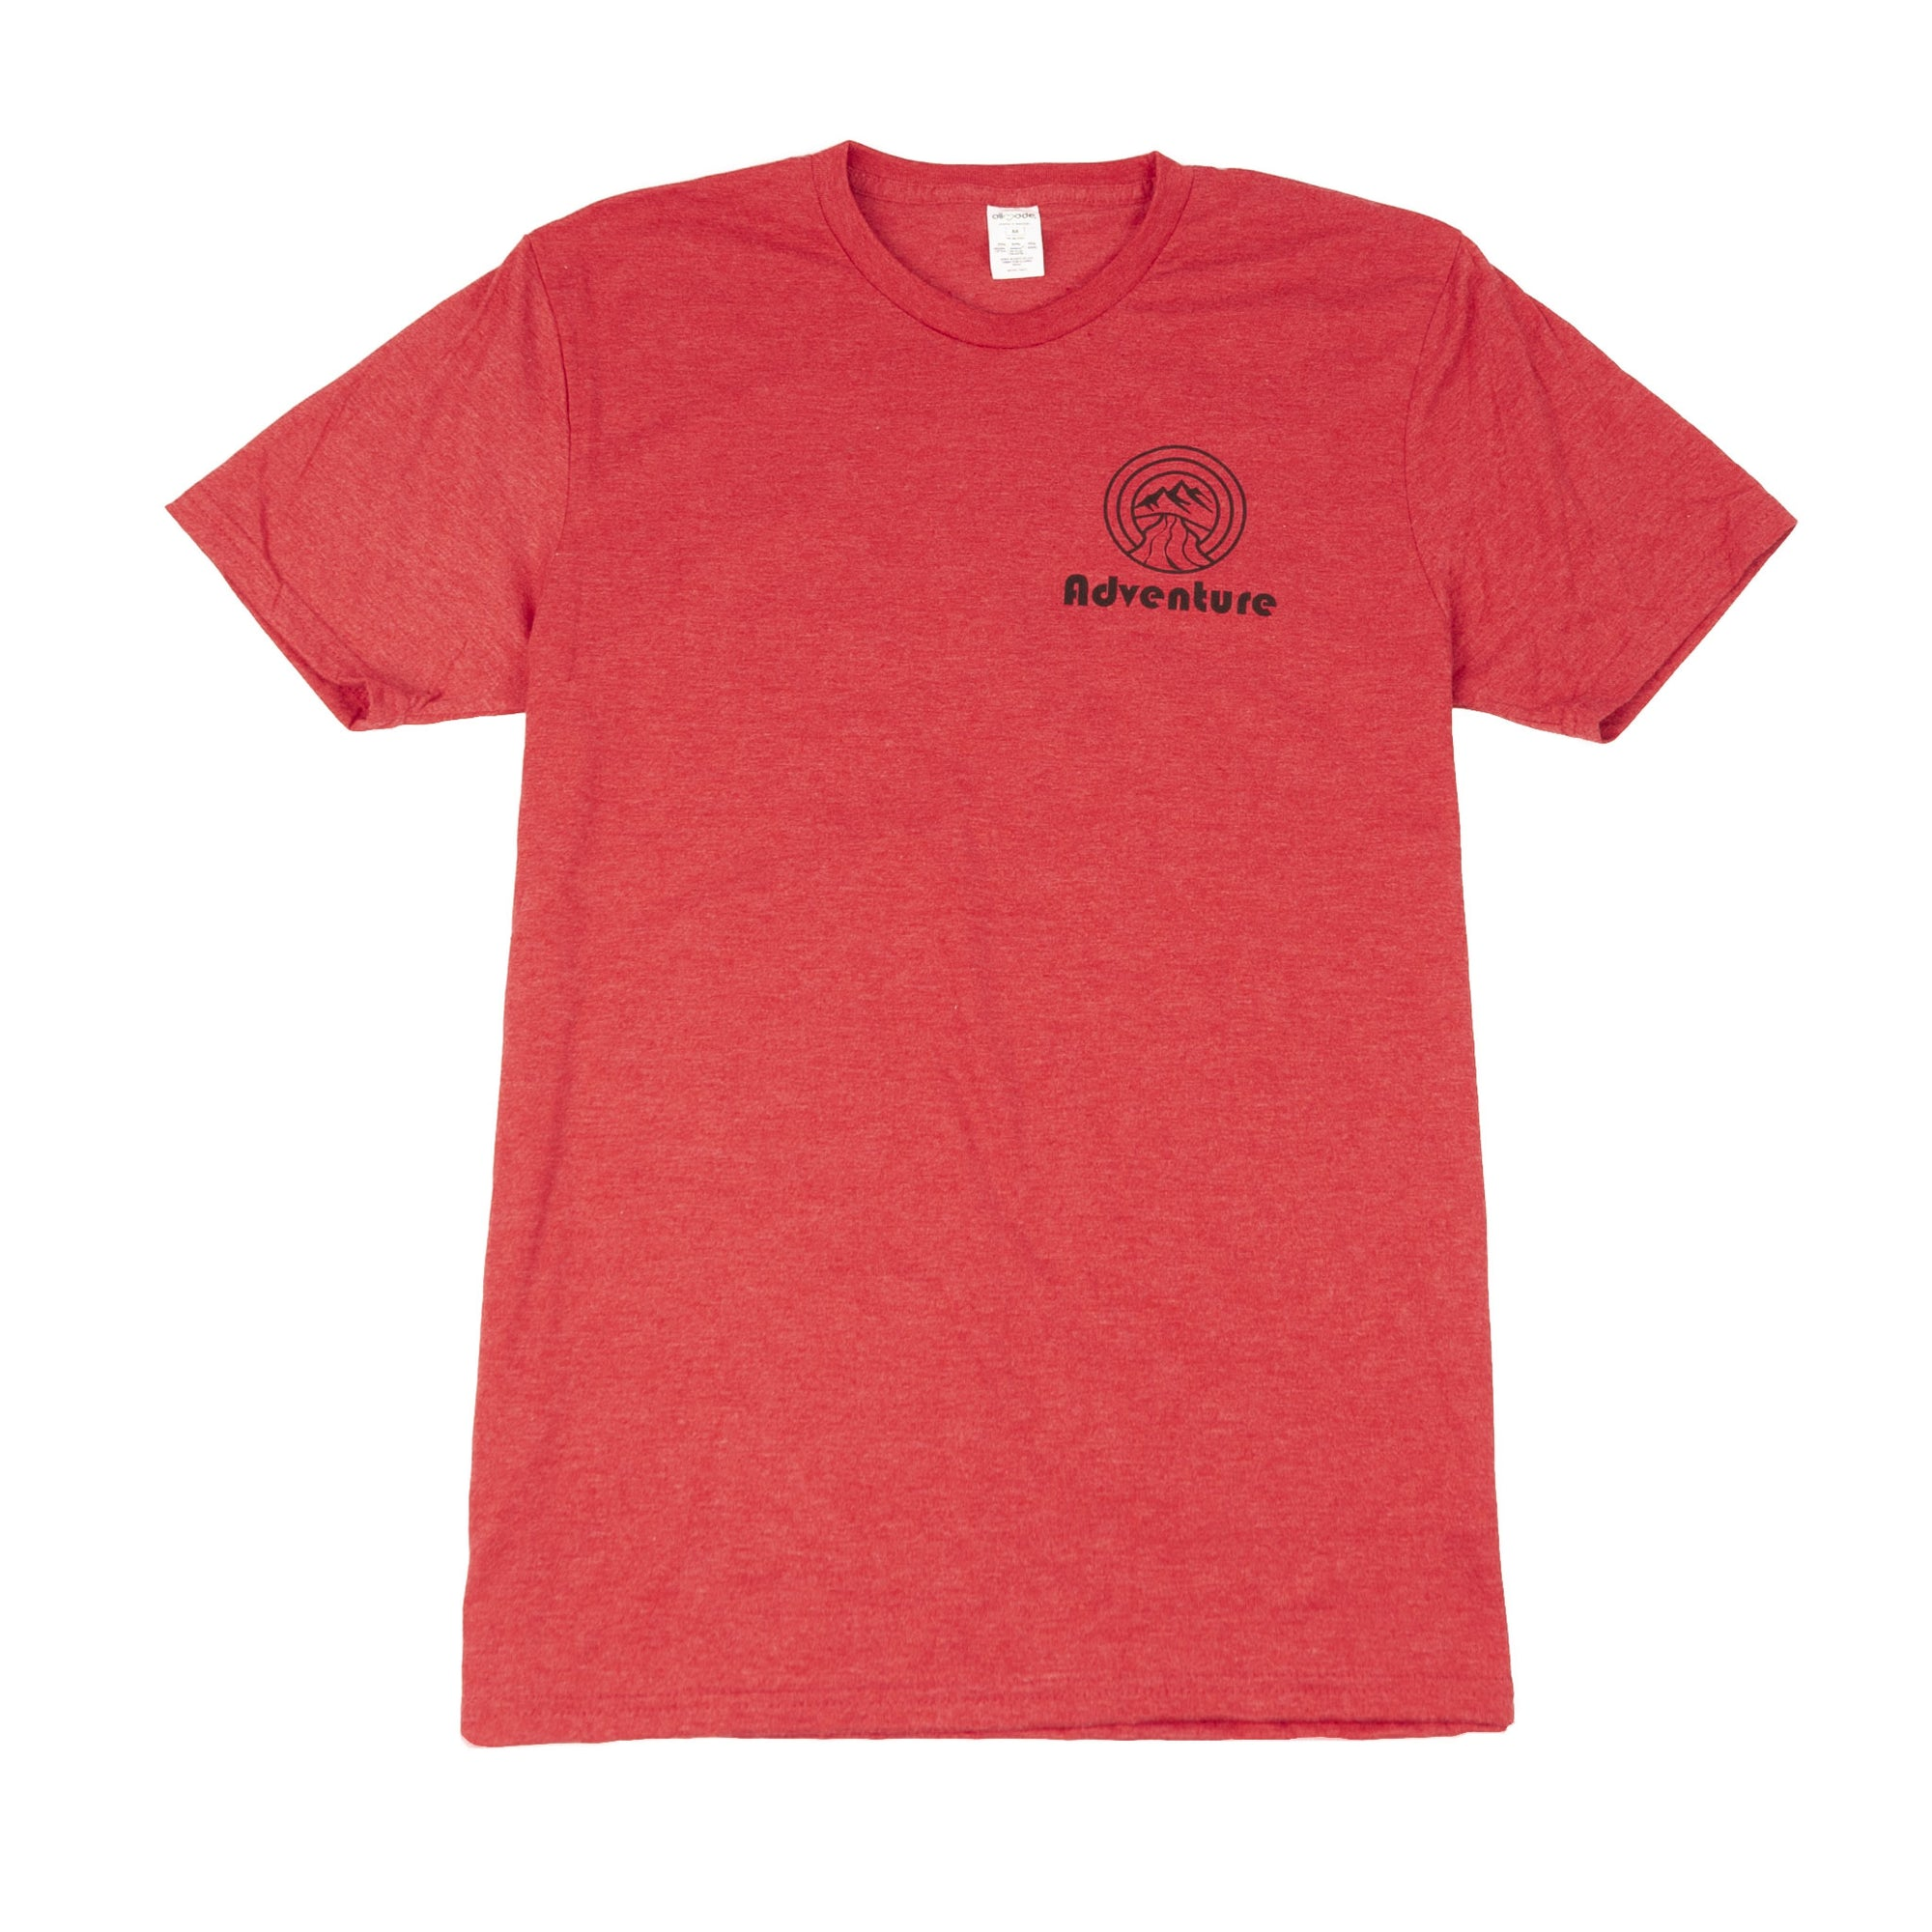 Men's Adventure T-Shirt